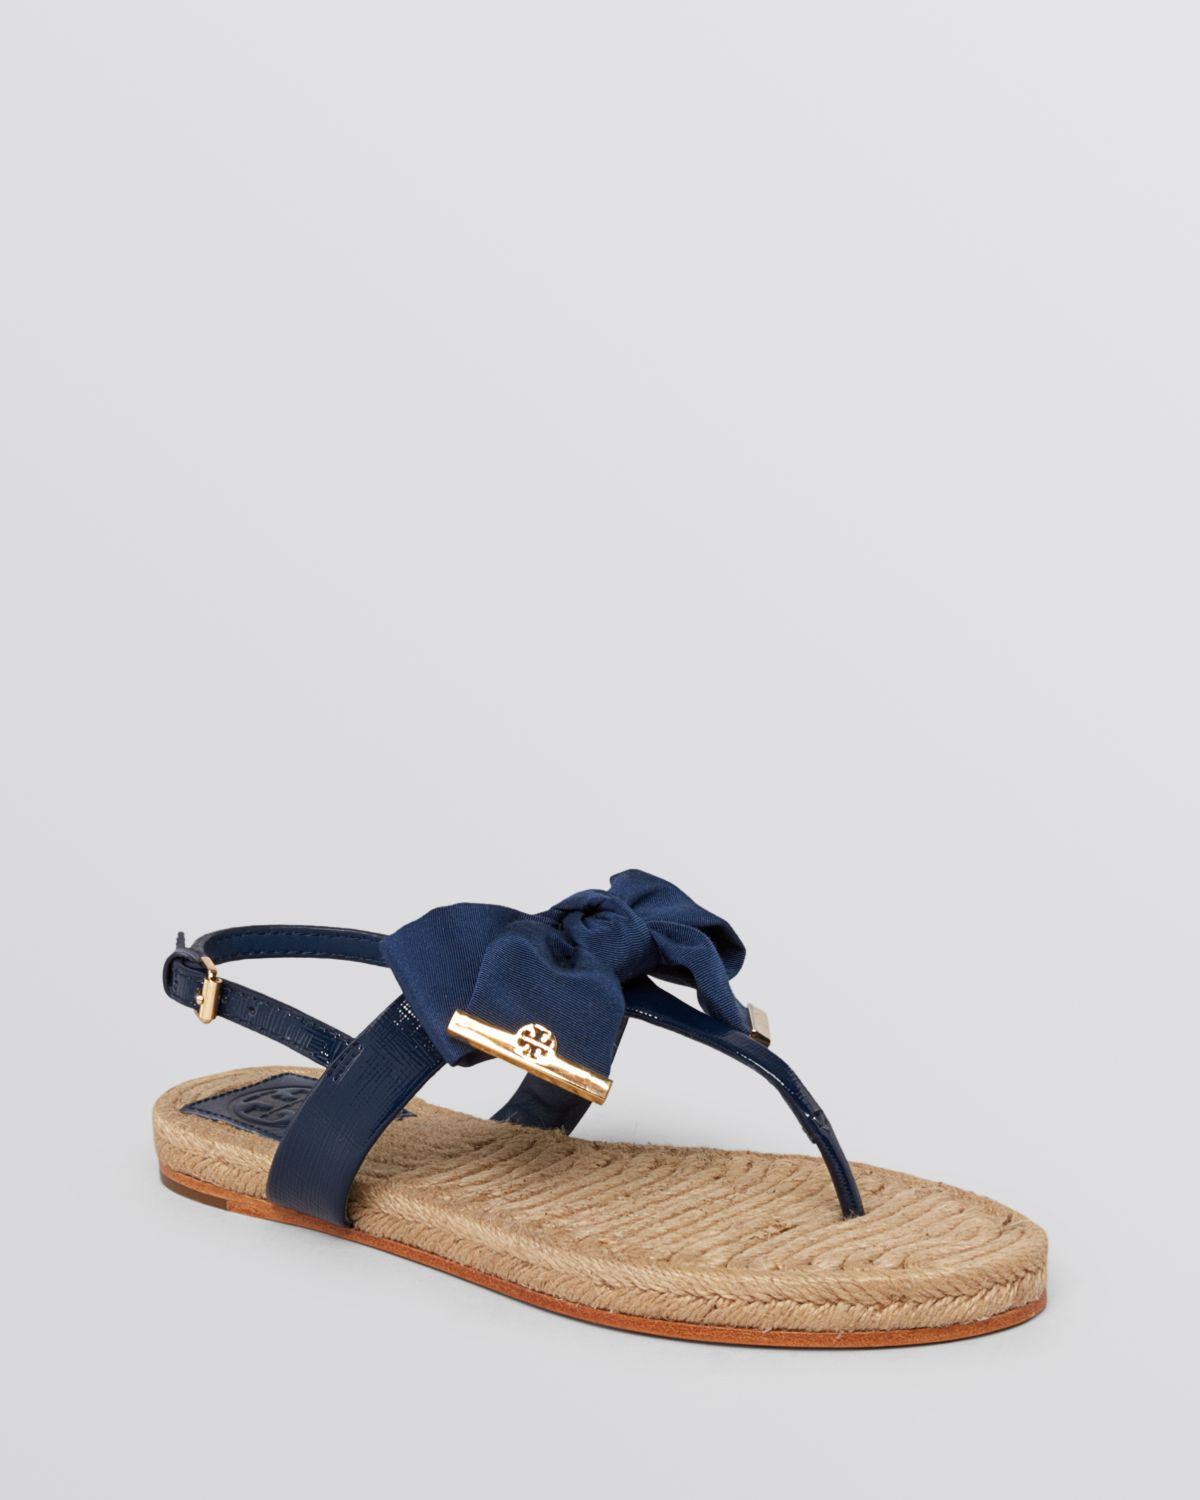 77aac64c41efff ... promo code for tory burch flat thong sandals penny bow in blue lyst  316c8 a6deb ...